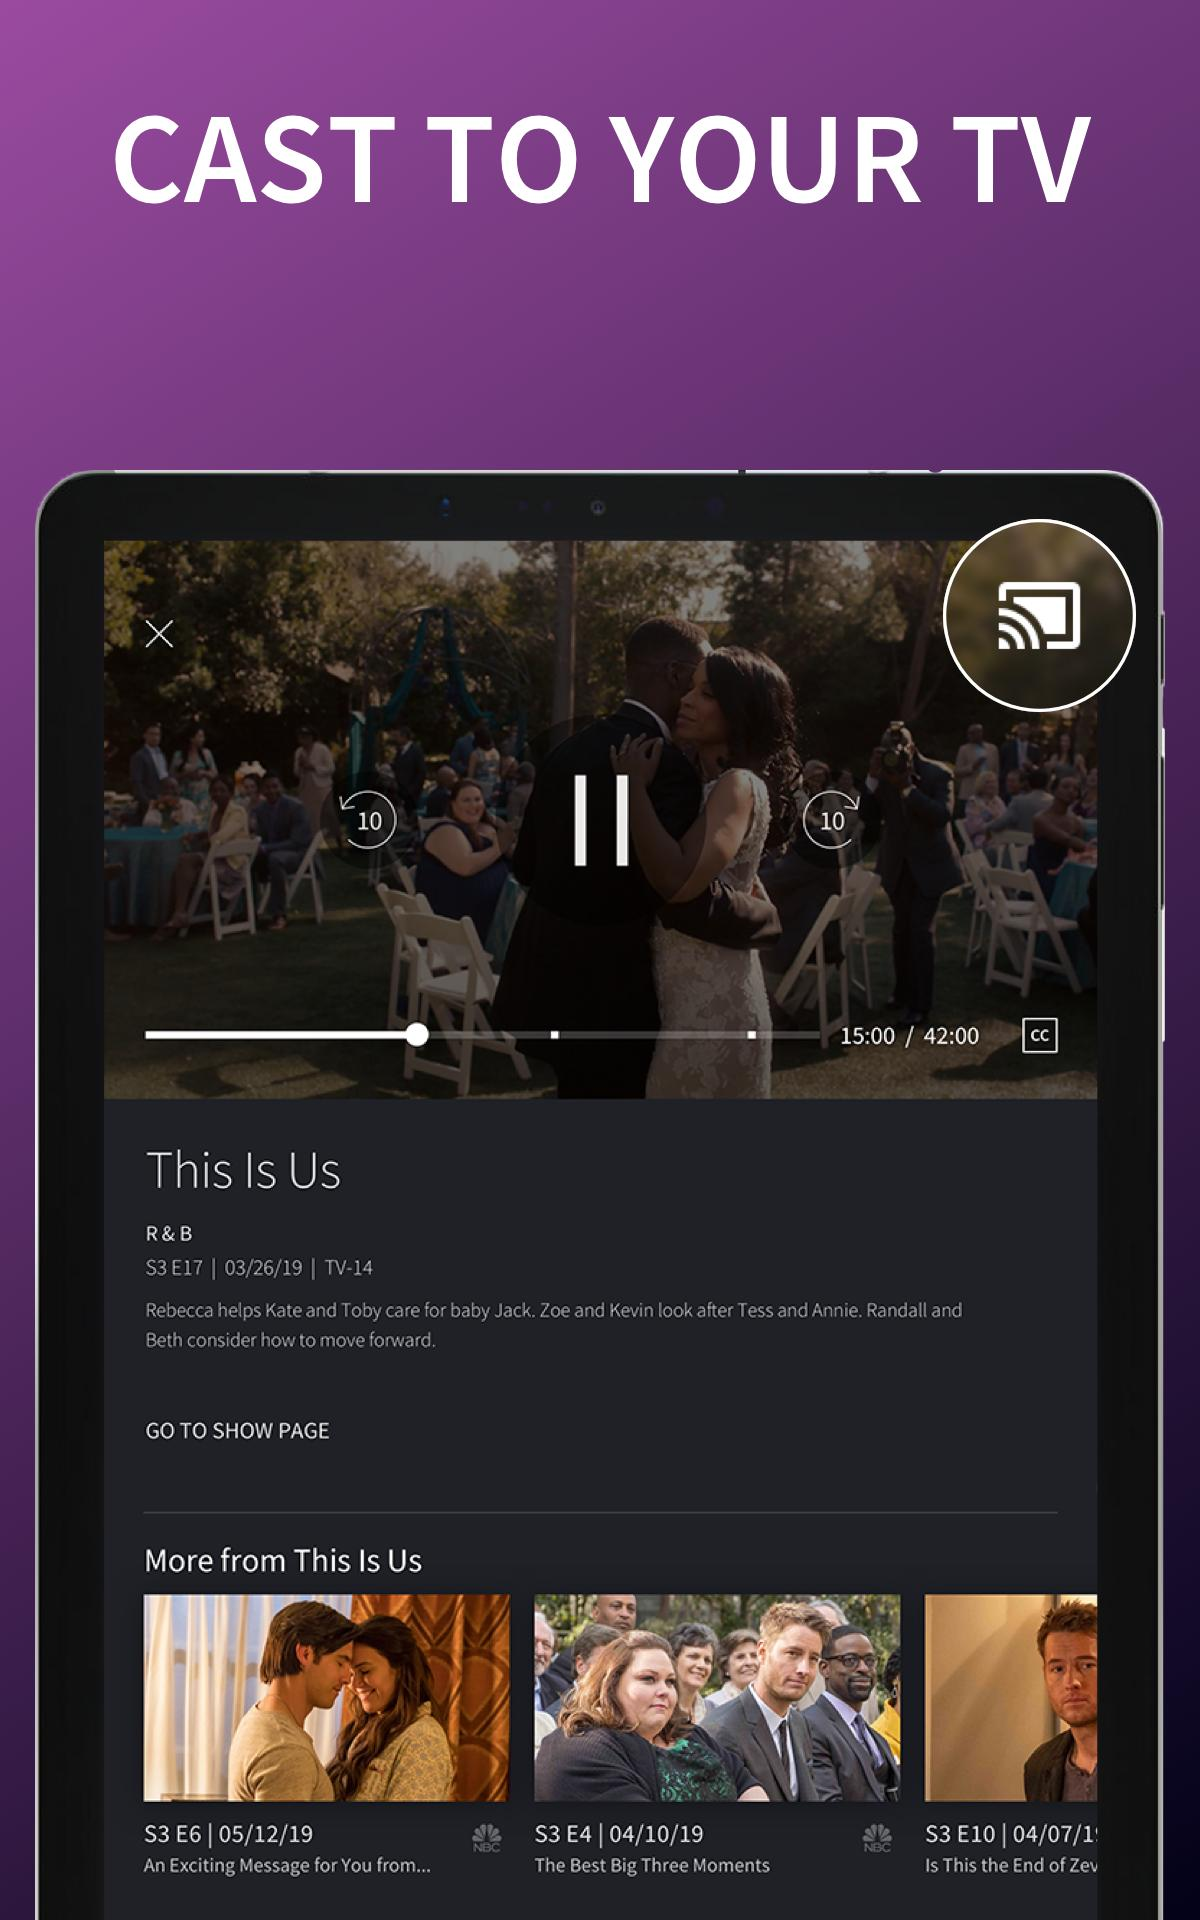 The NBC App - Stream Live TV and Episodes for Free 7.4.1 Screenshot 15